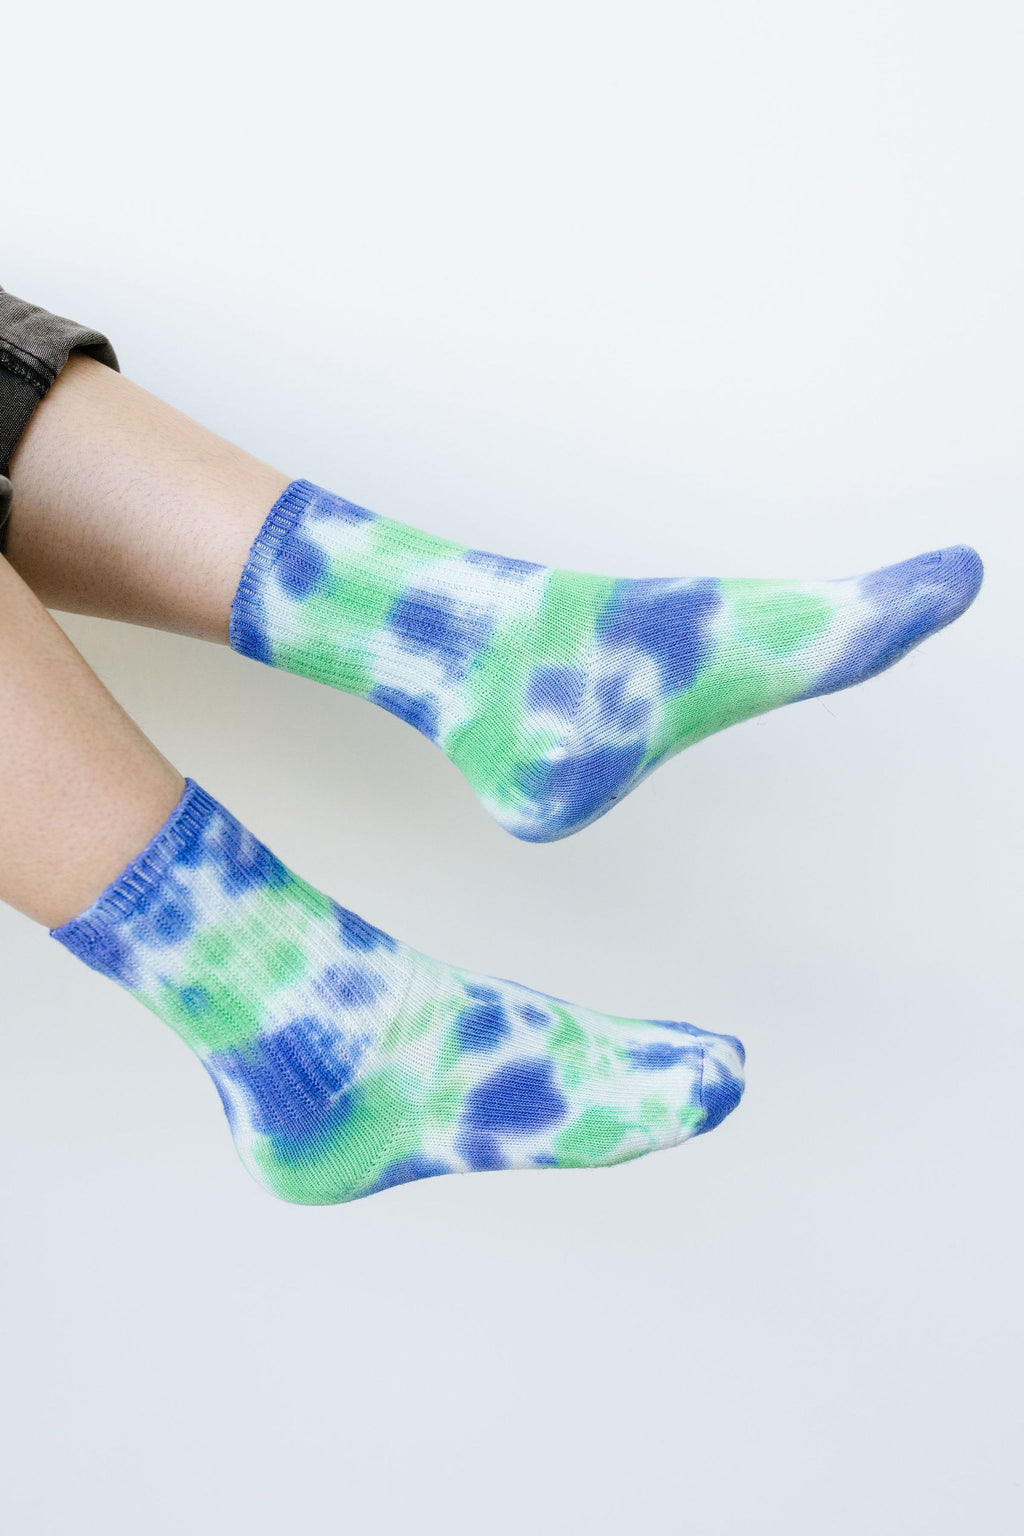 Happy Feet Tie Dye Socks In Blue & Green - Amaranth Collection